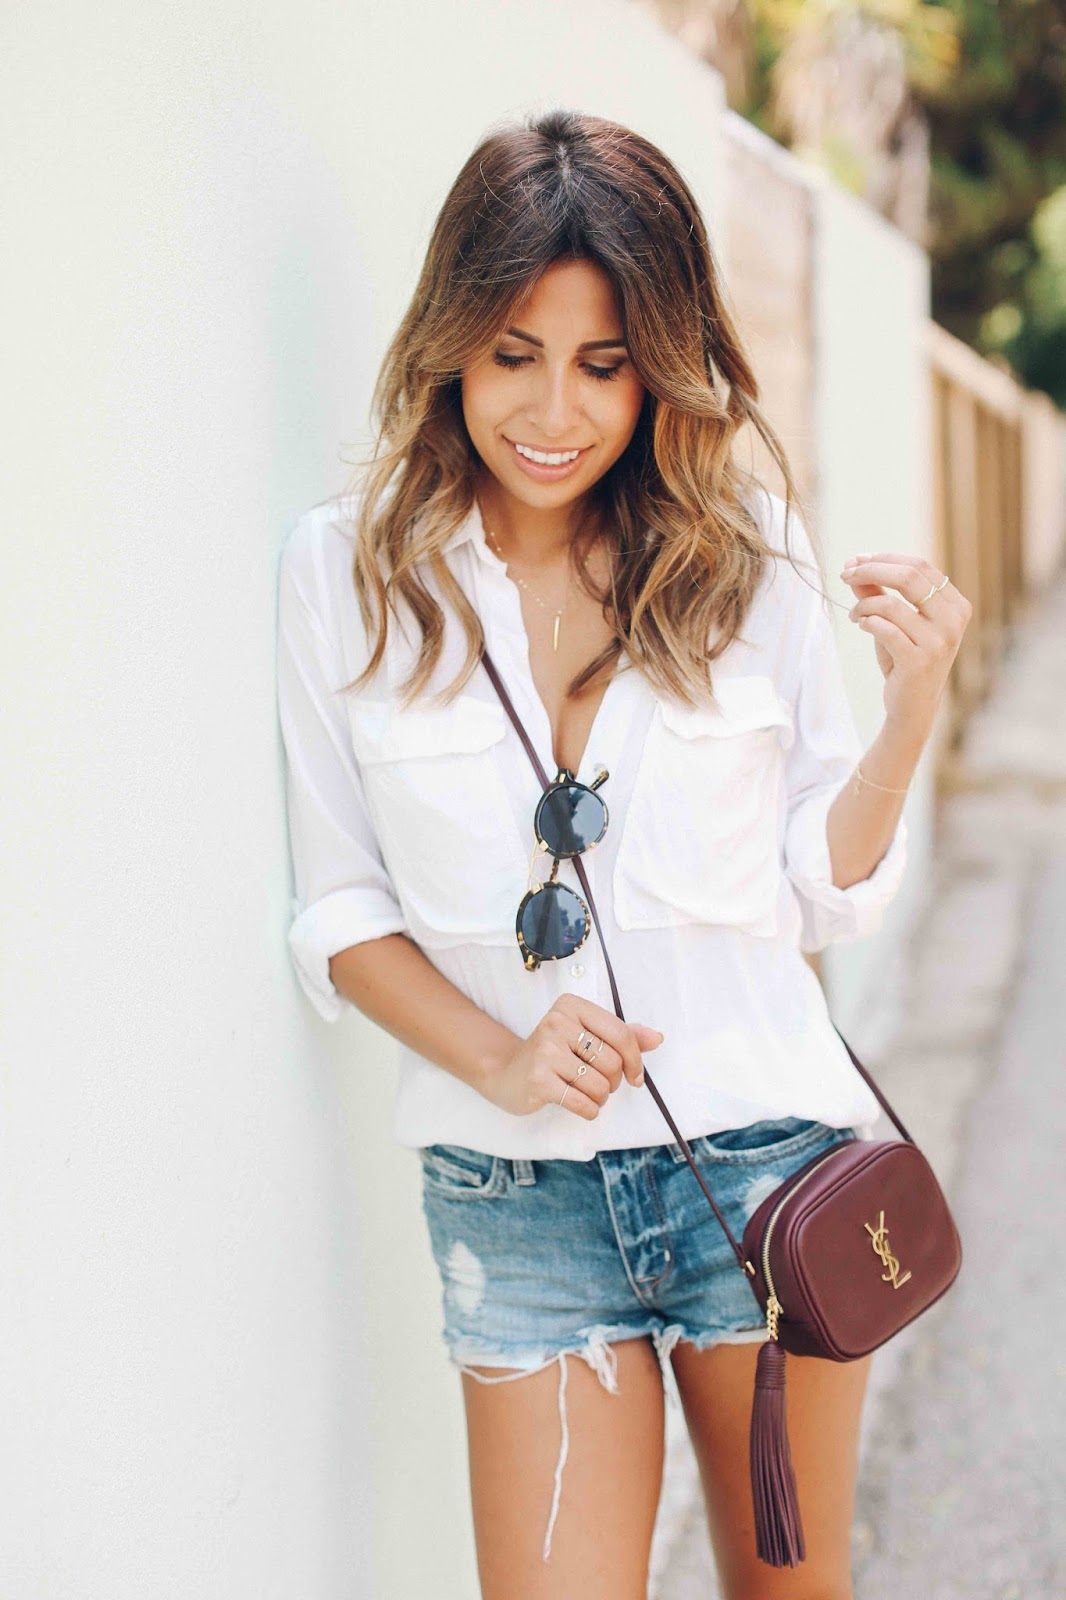 ysl blogger bag, casual denim shorts and white tee outfit